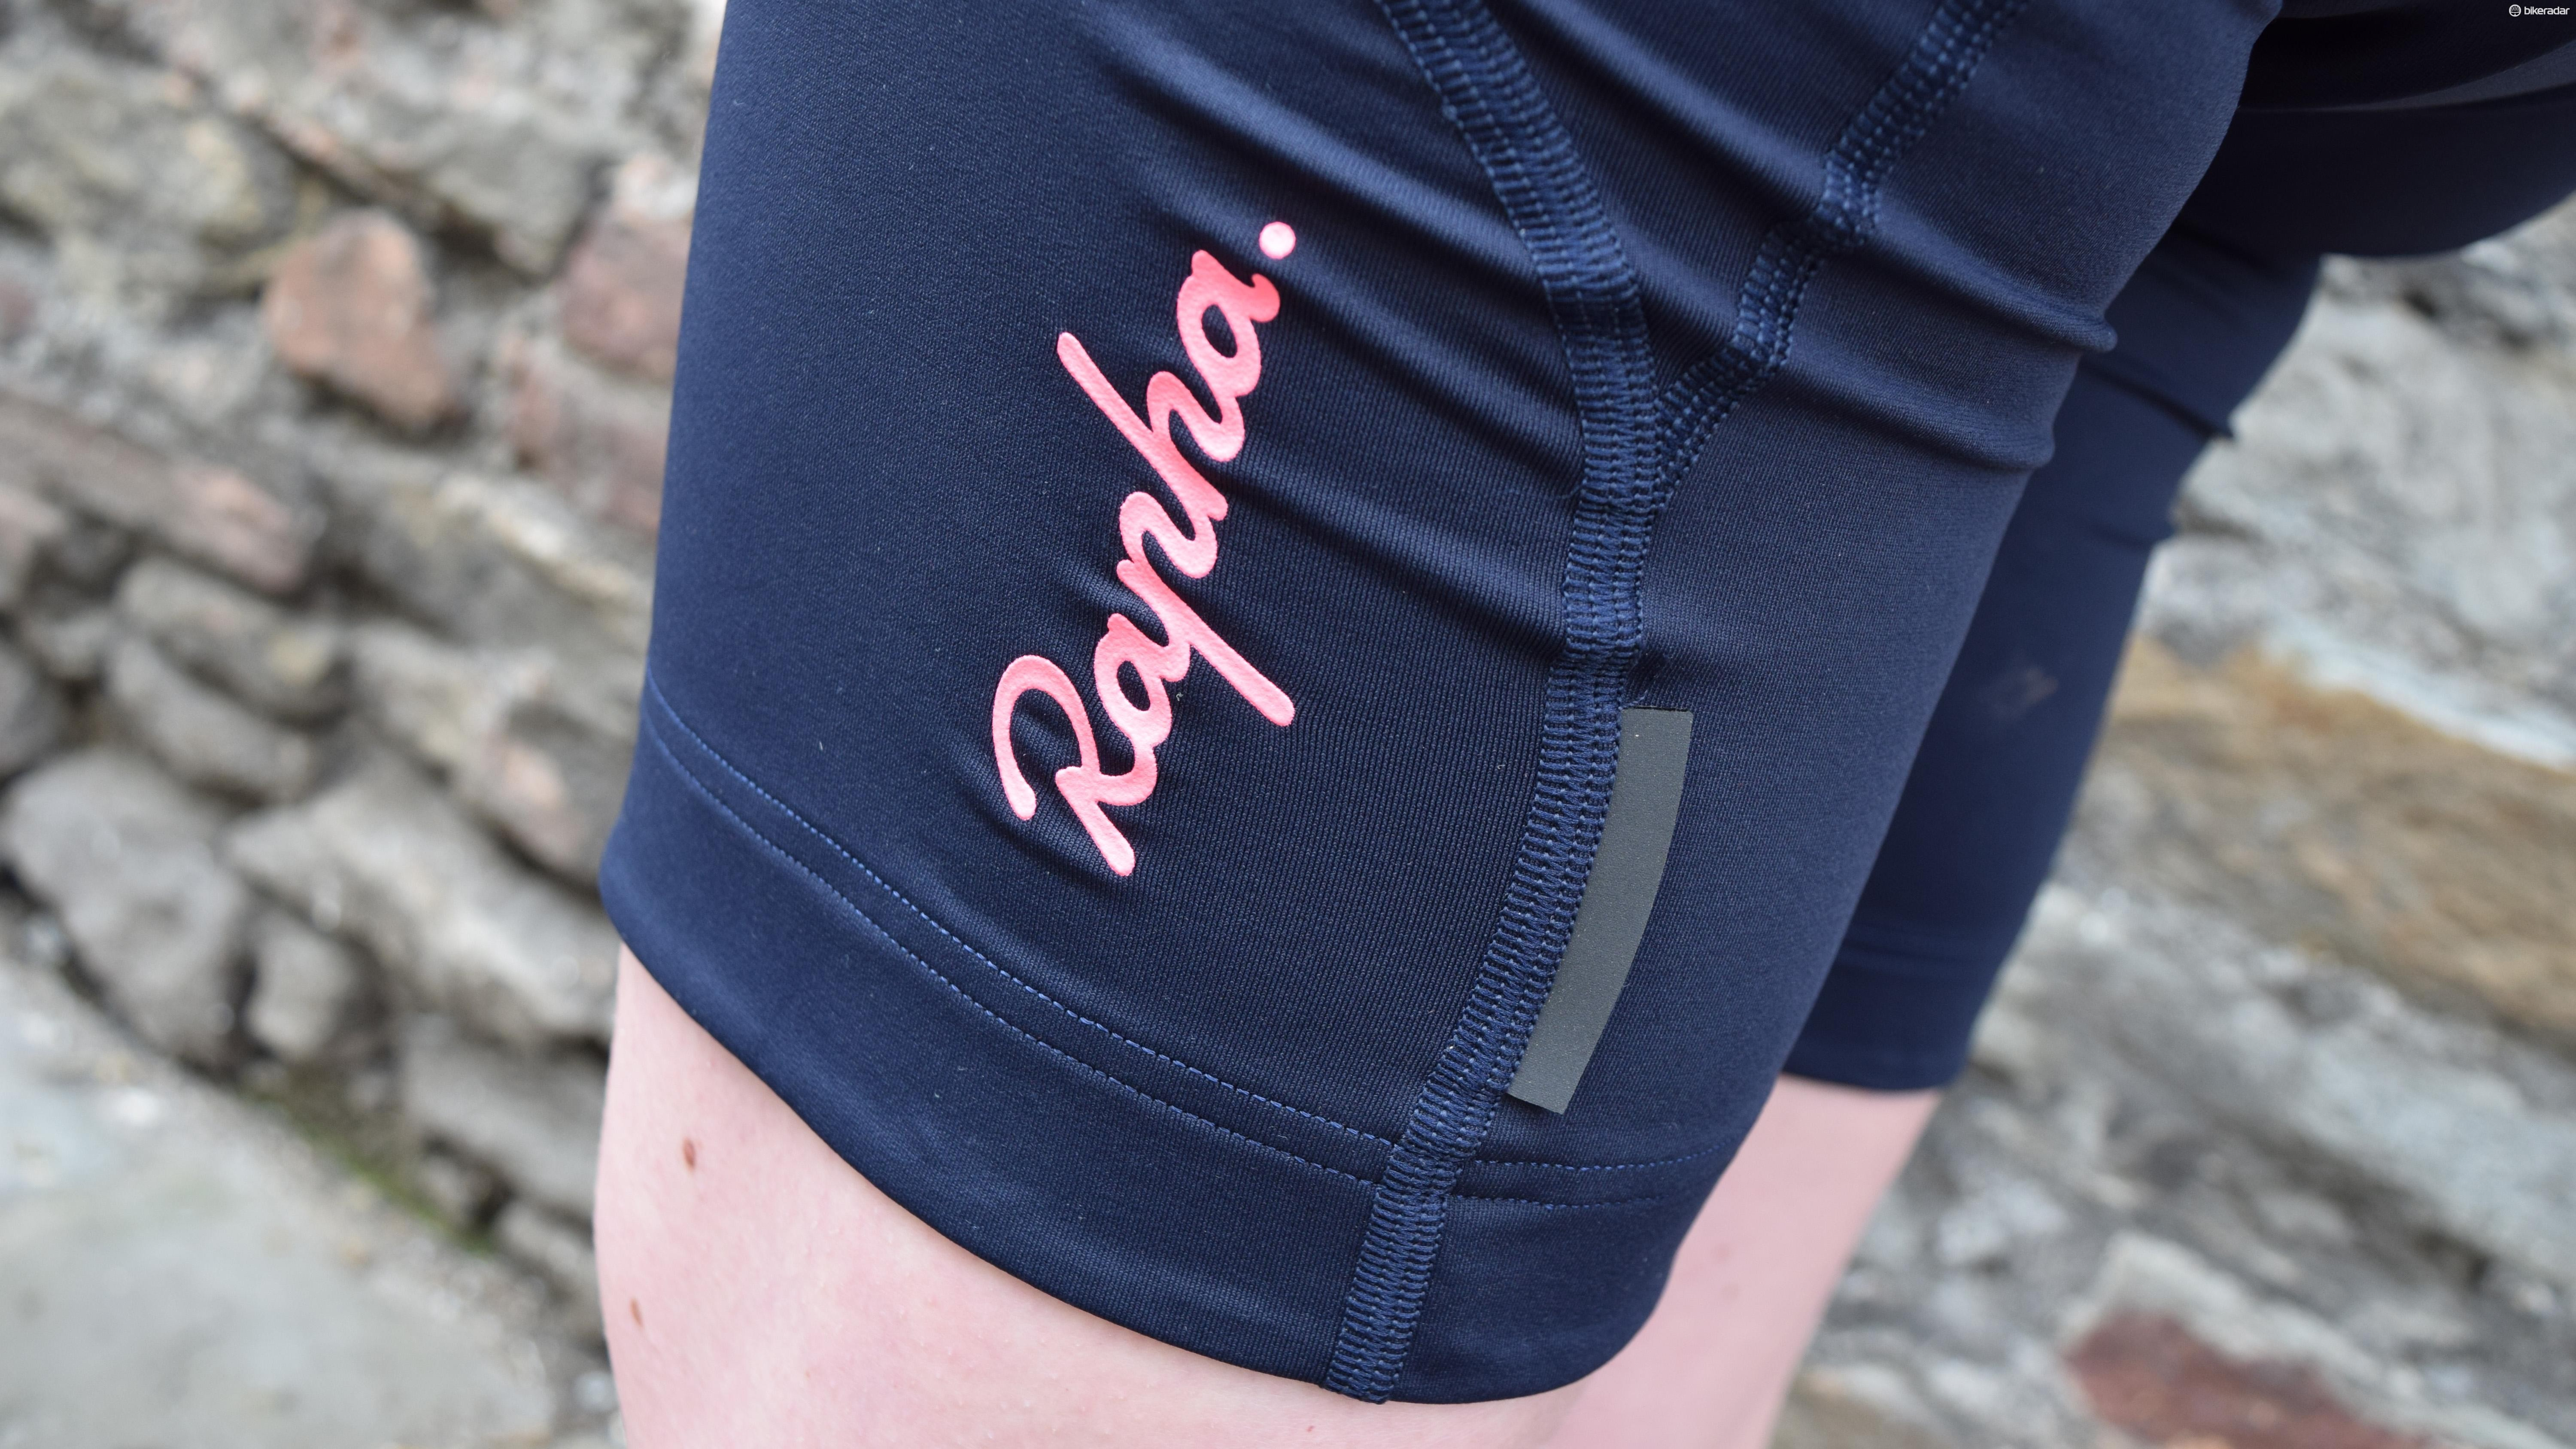 Flatlock stitching, the distinctive Rapha logo and reflective tabs